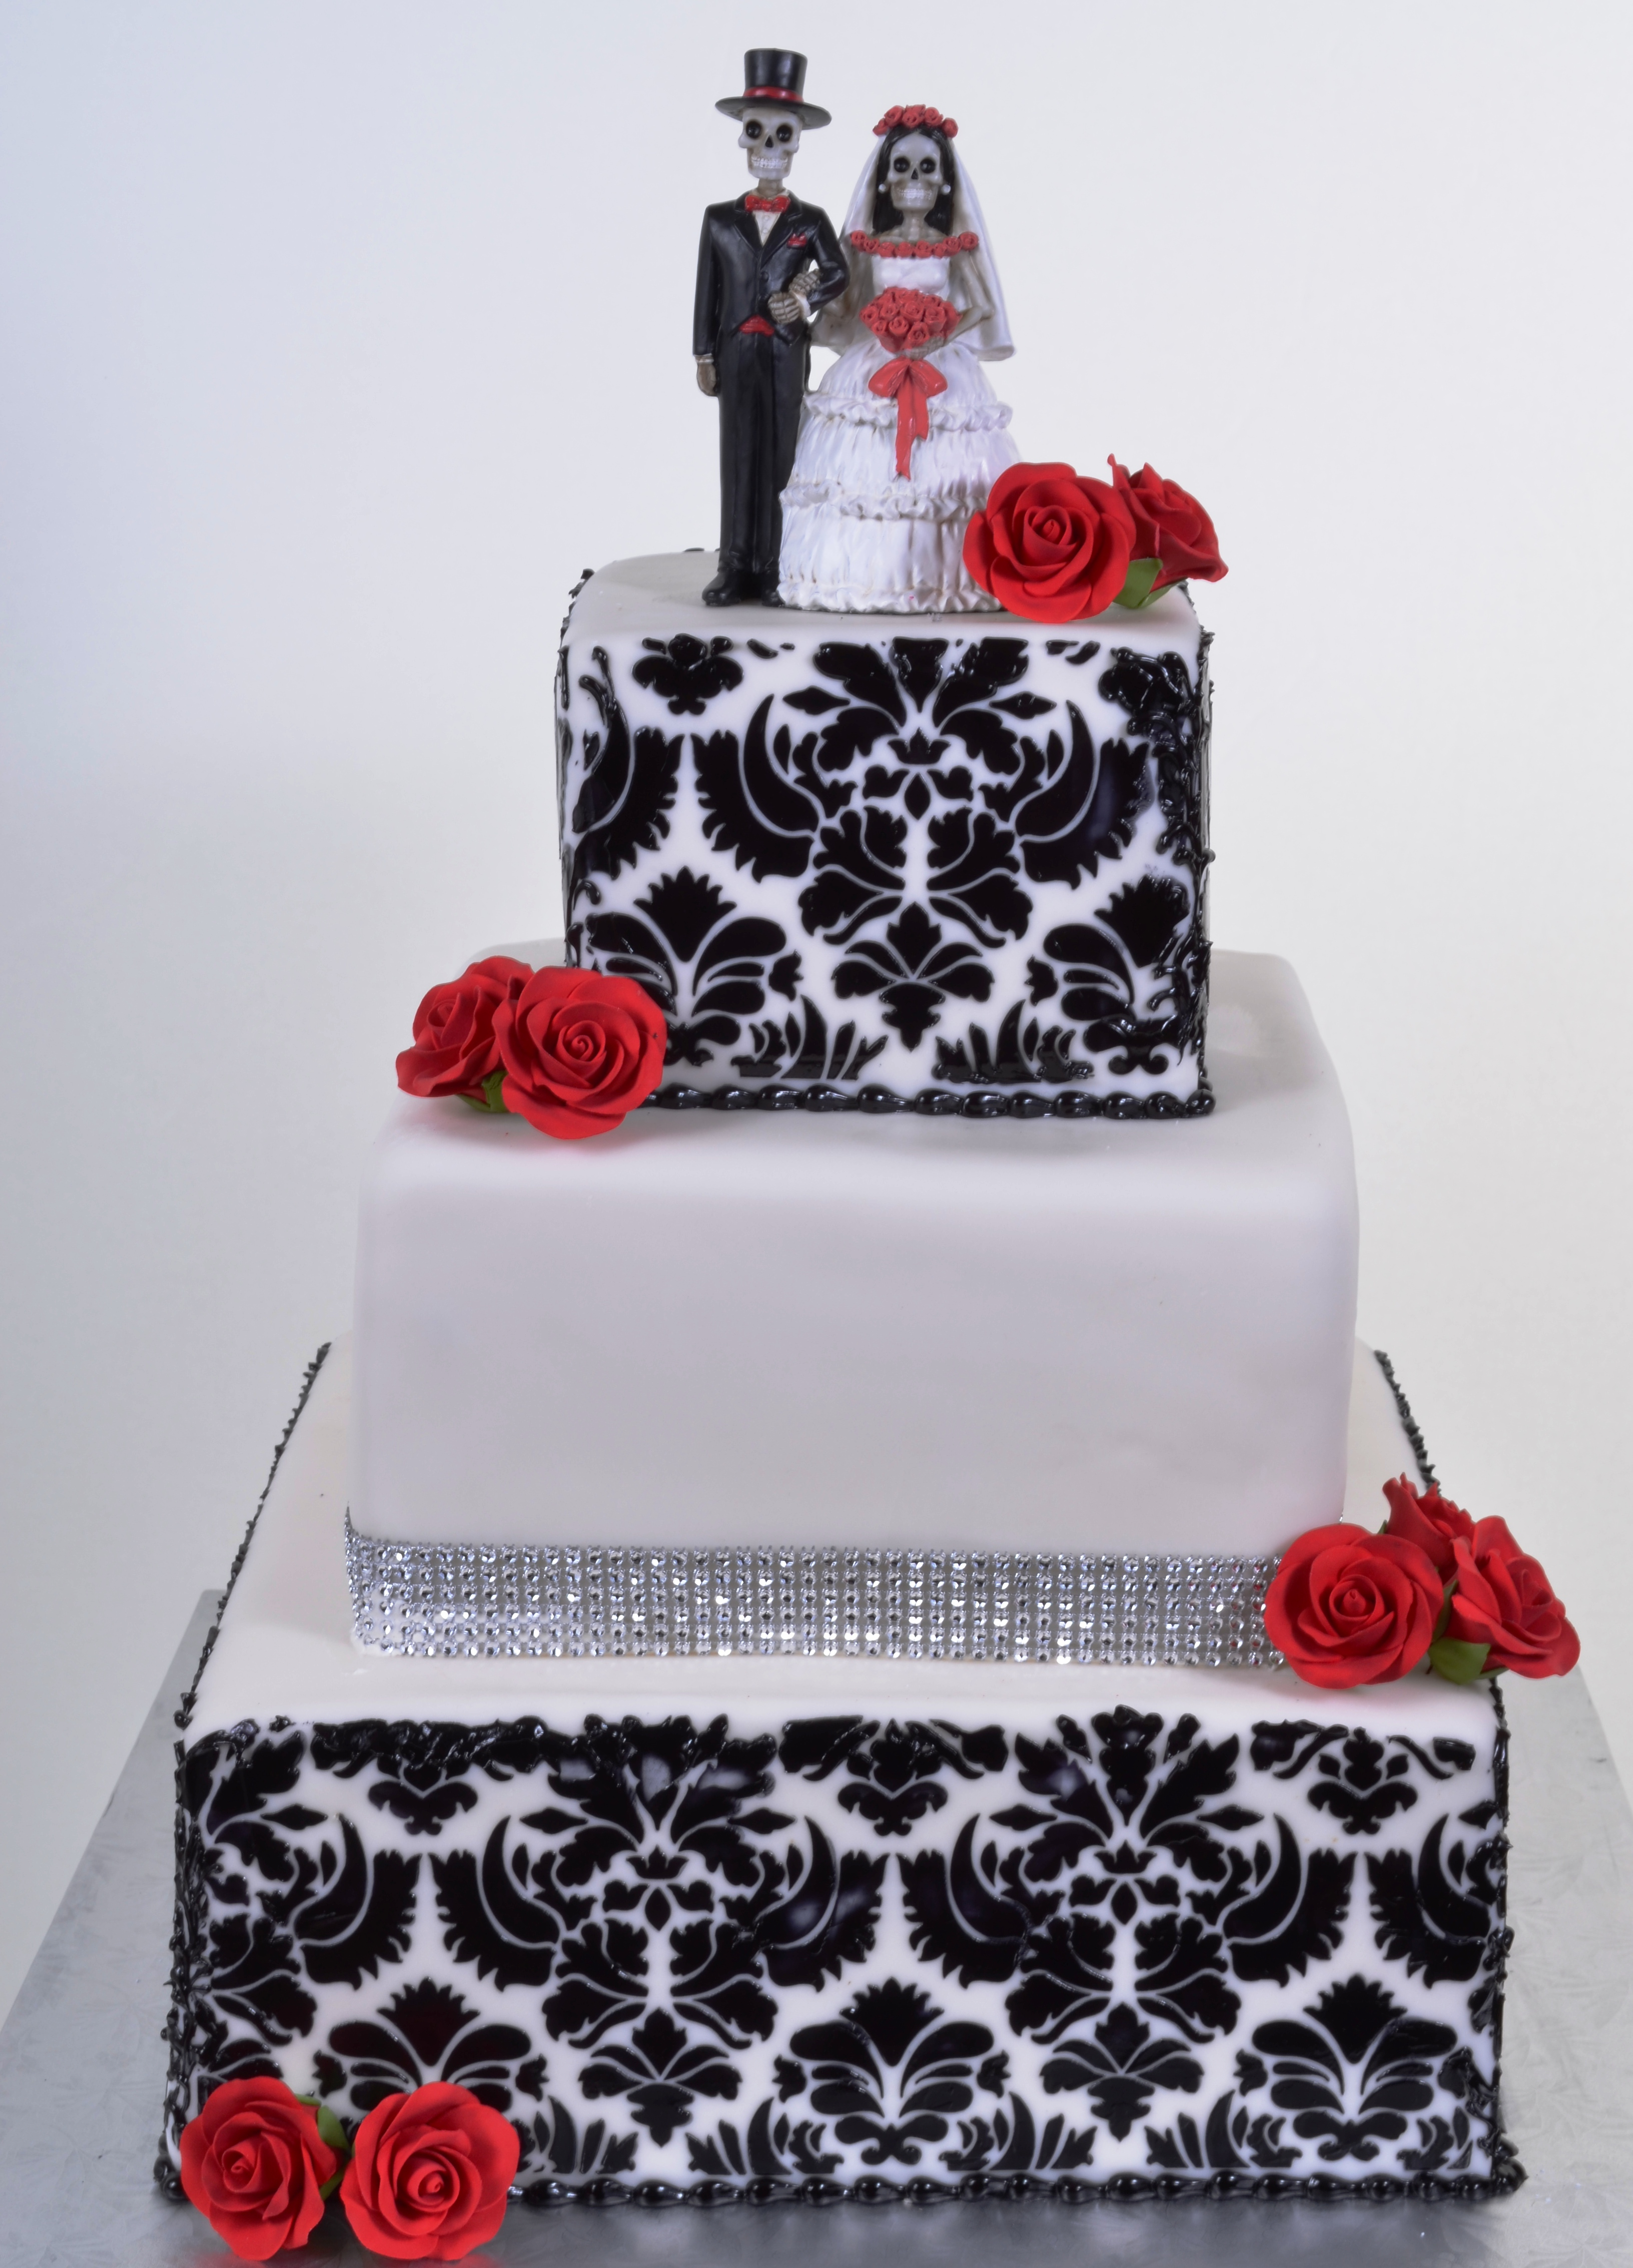 Pastry Palace Las Vegas - Cake #598 - Black and White Damask with Red